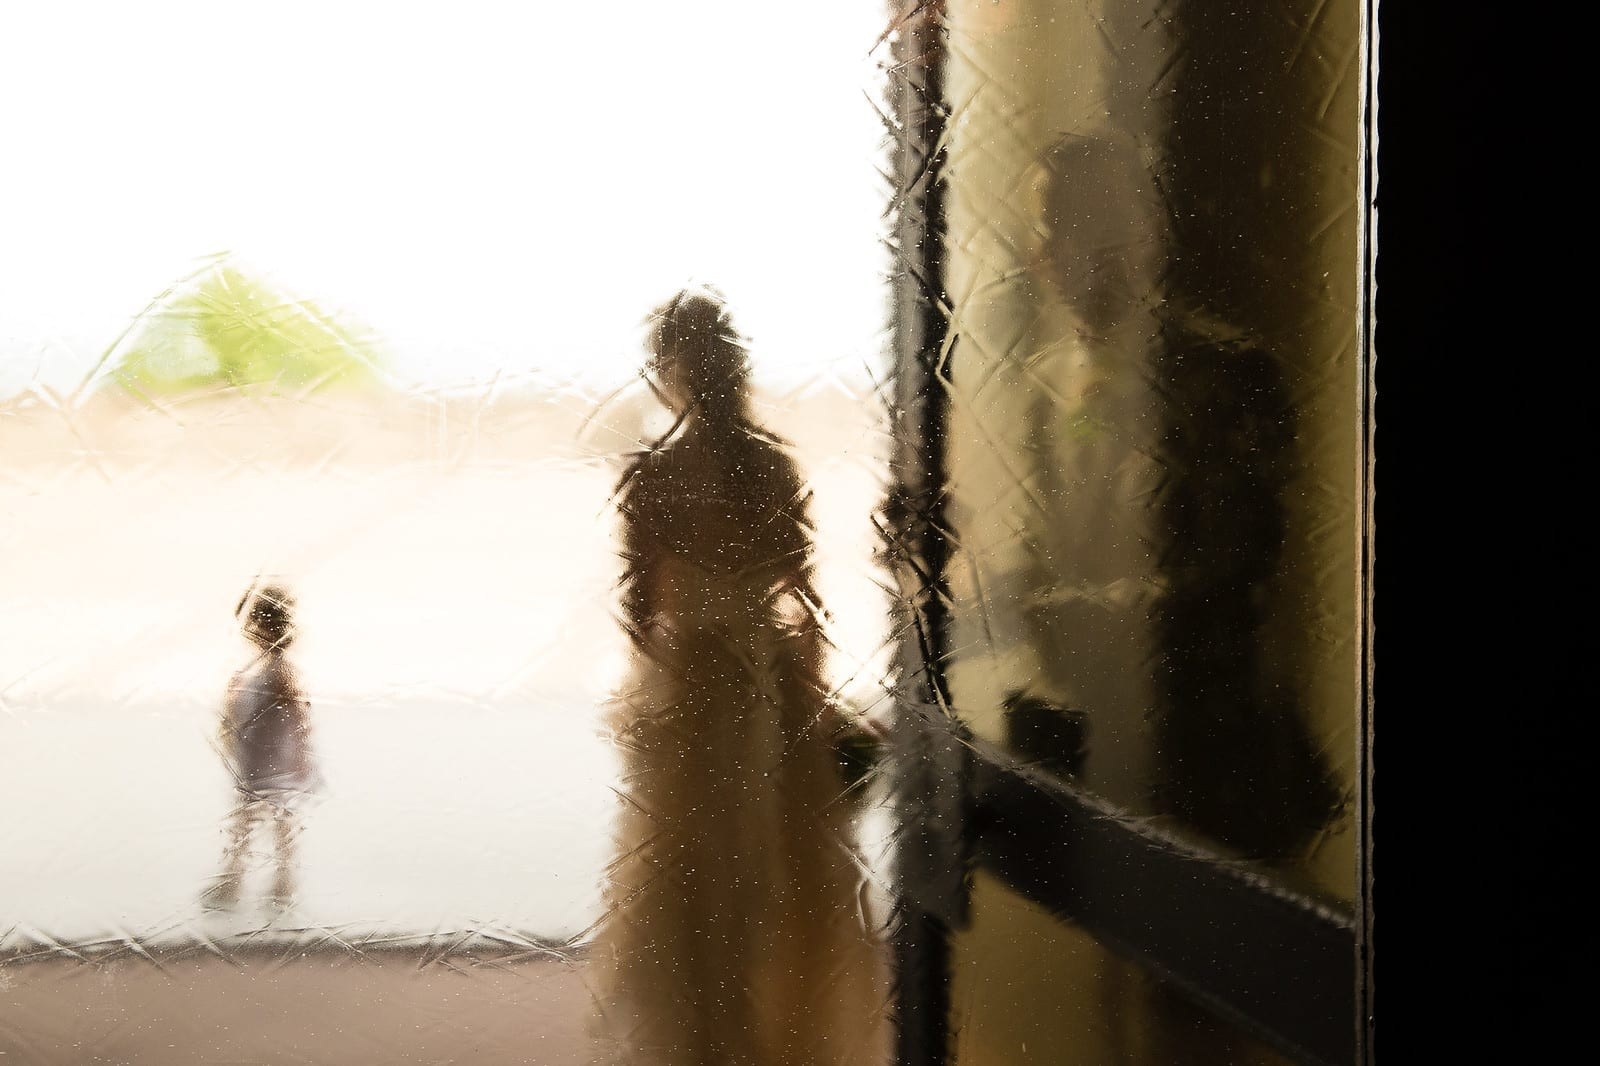 Australian Red Cross Forced Marriage Stream Trial Evaluation